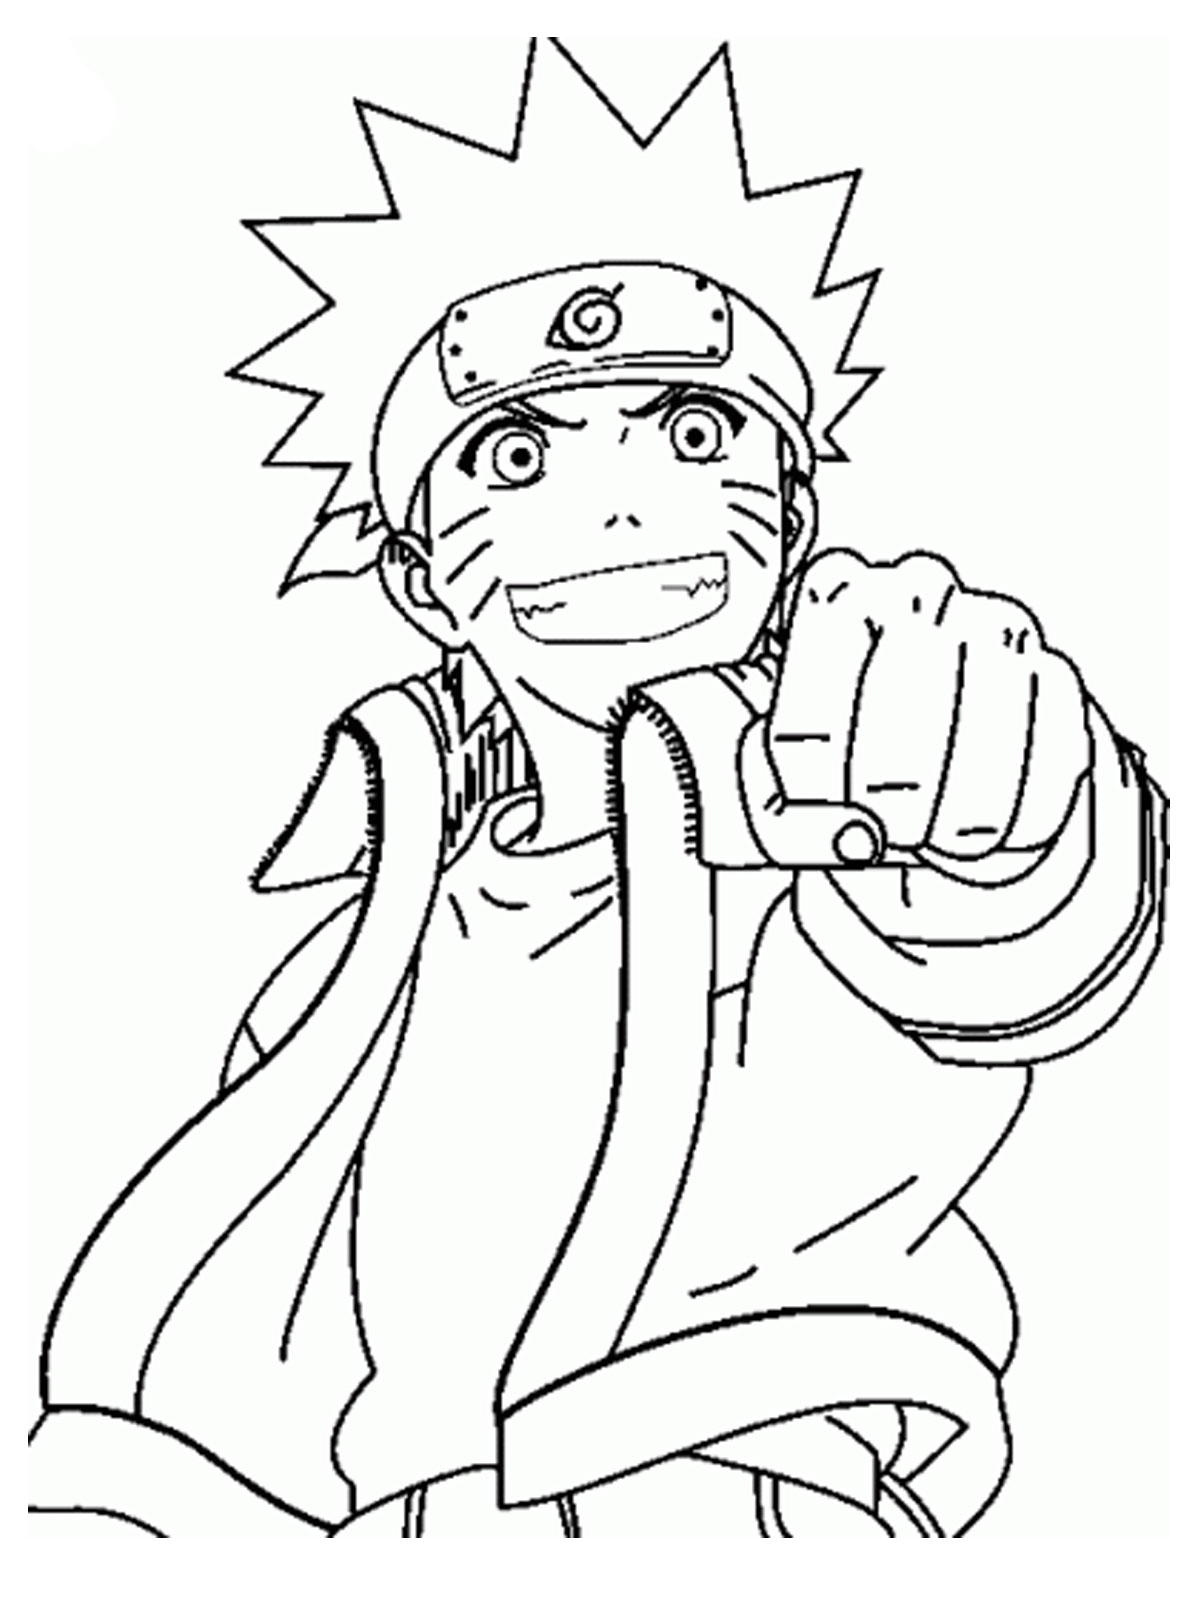 Adult Cute Naruto Color Pages Images best naruto shippuden coloring pages to download and print for free images